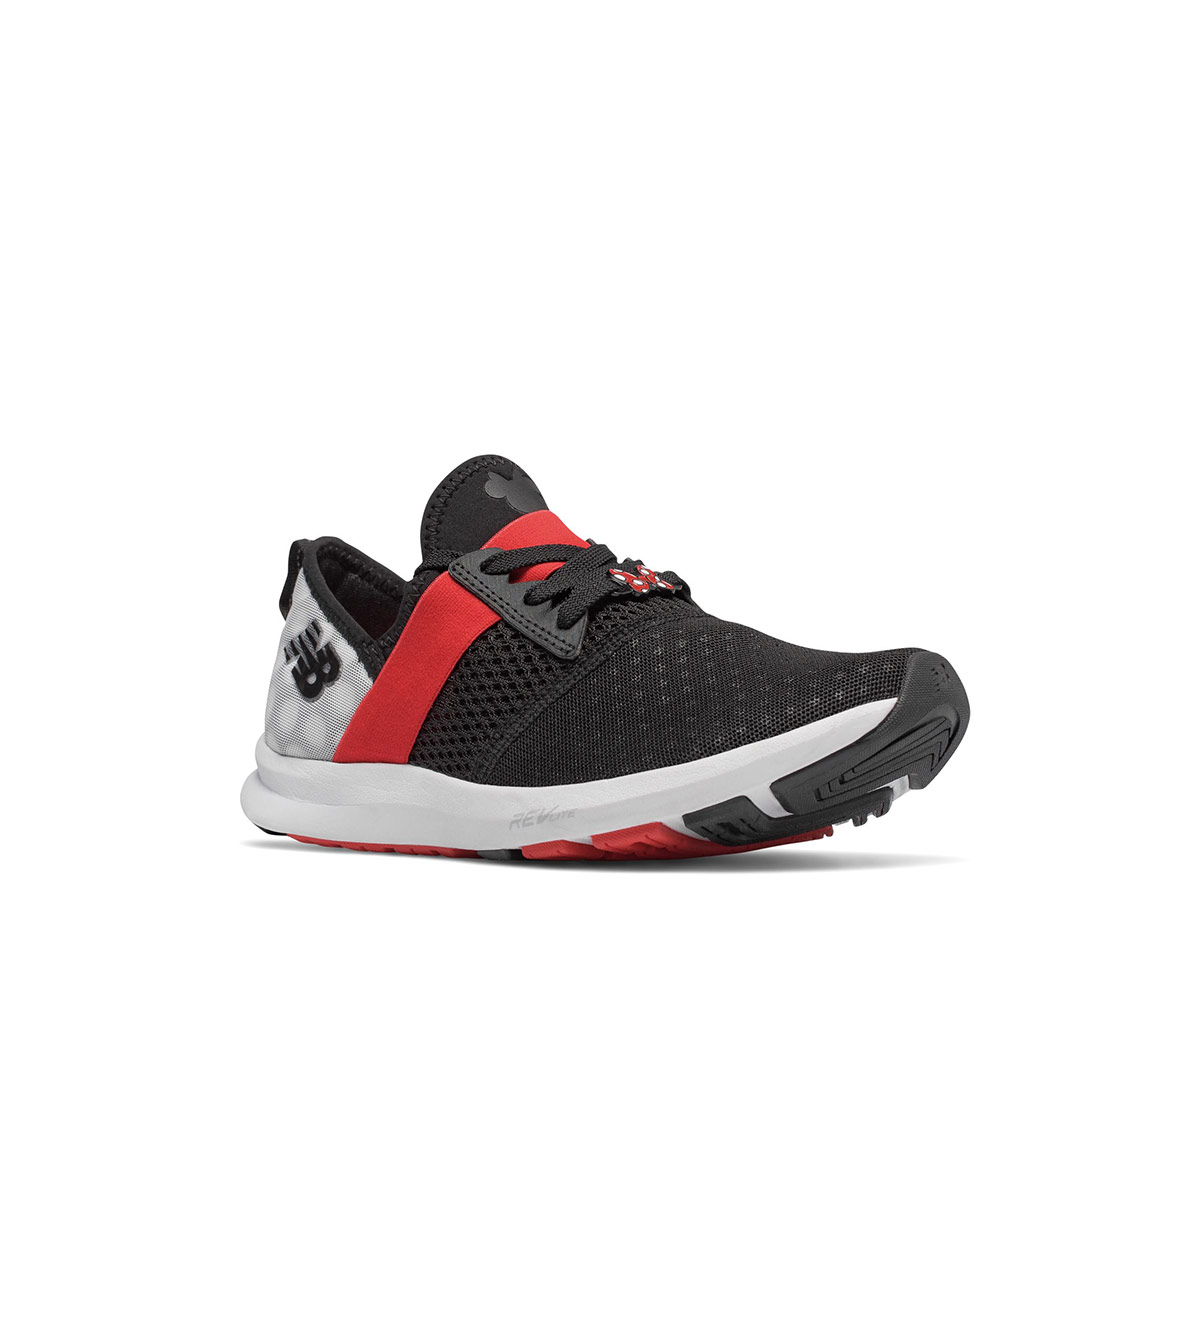 Saliente Moderar Rebotar  Need Gym Motivation? These New Balance Minnie Running Shoes Will Help |  Real Simple